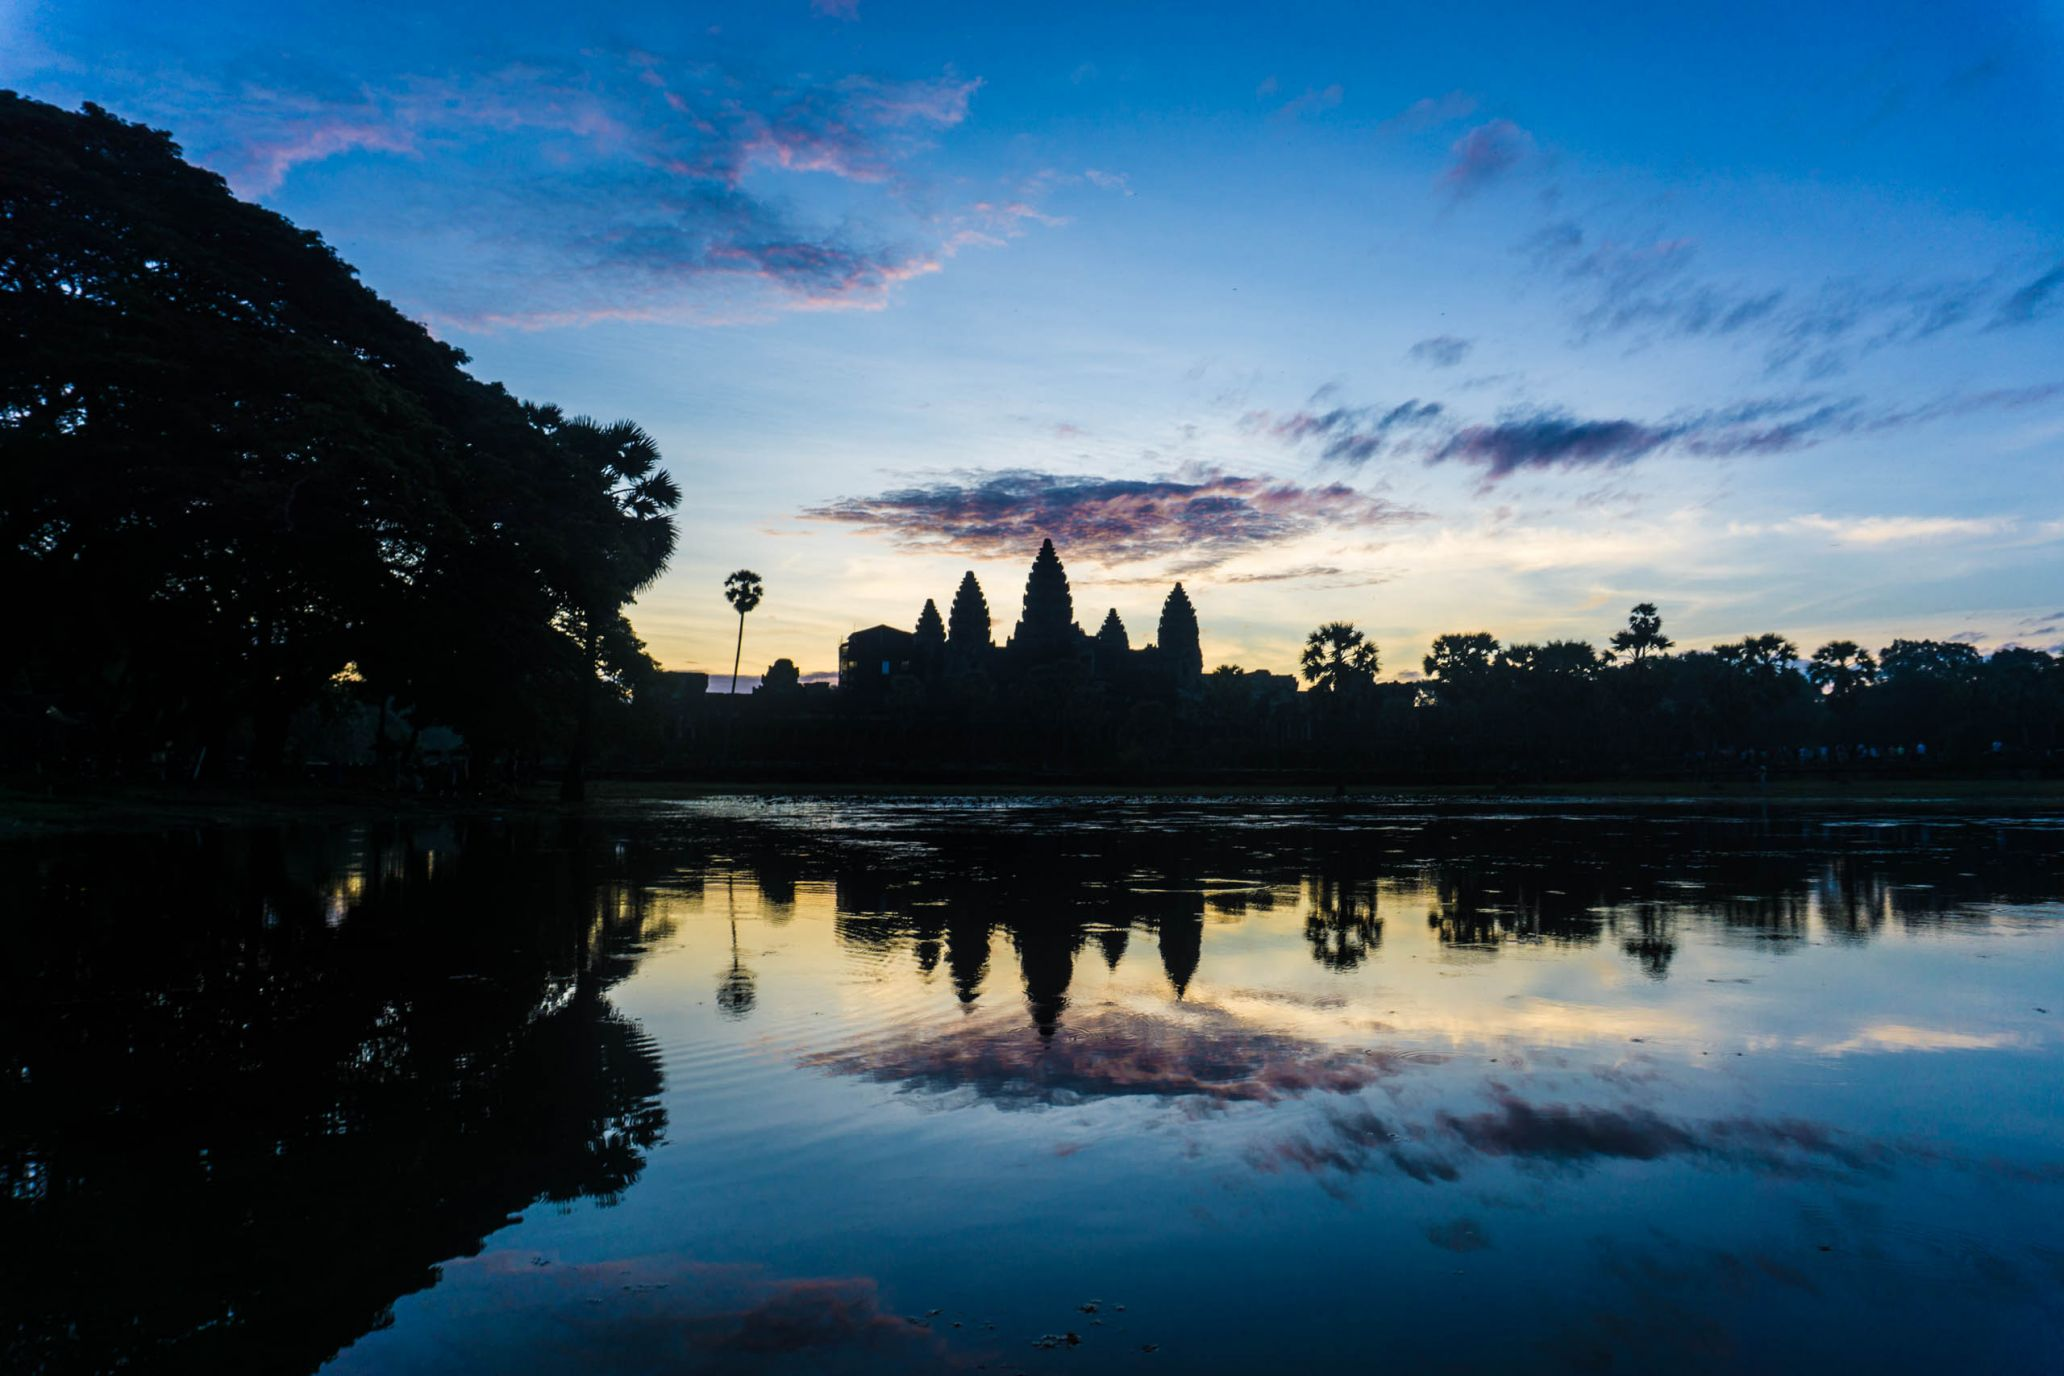 Sunrise at Angkor Wat, Cambodia.